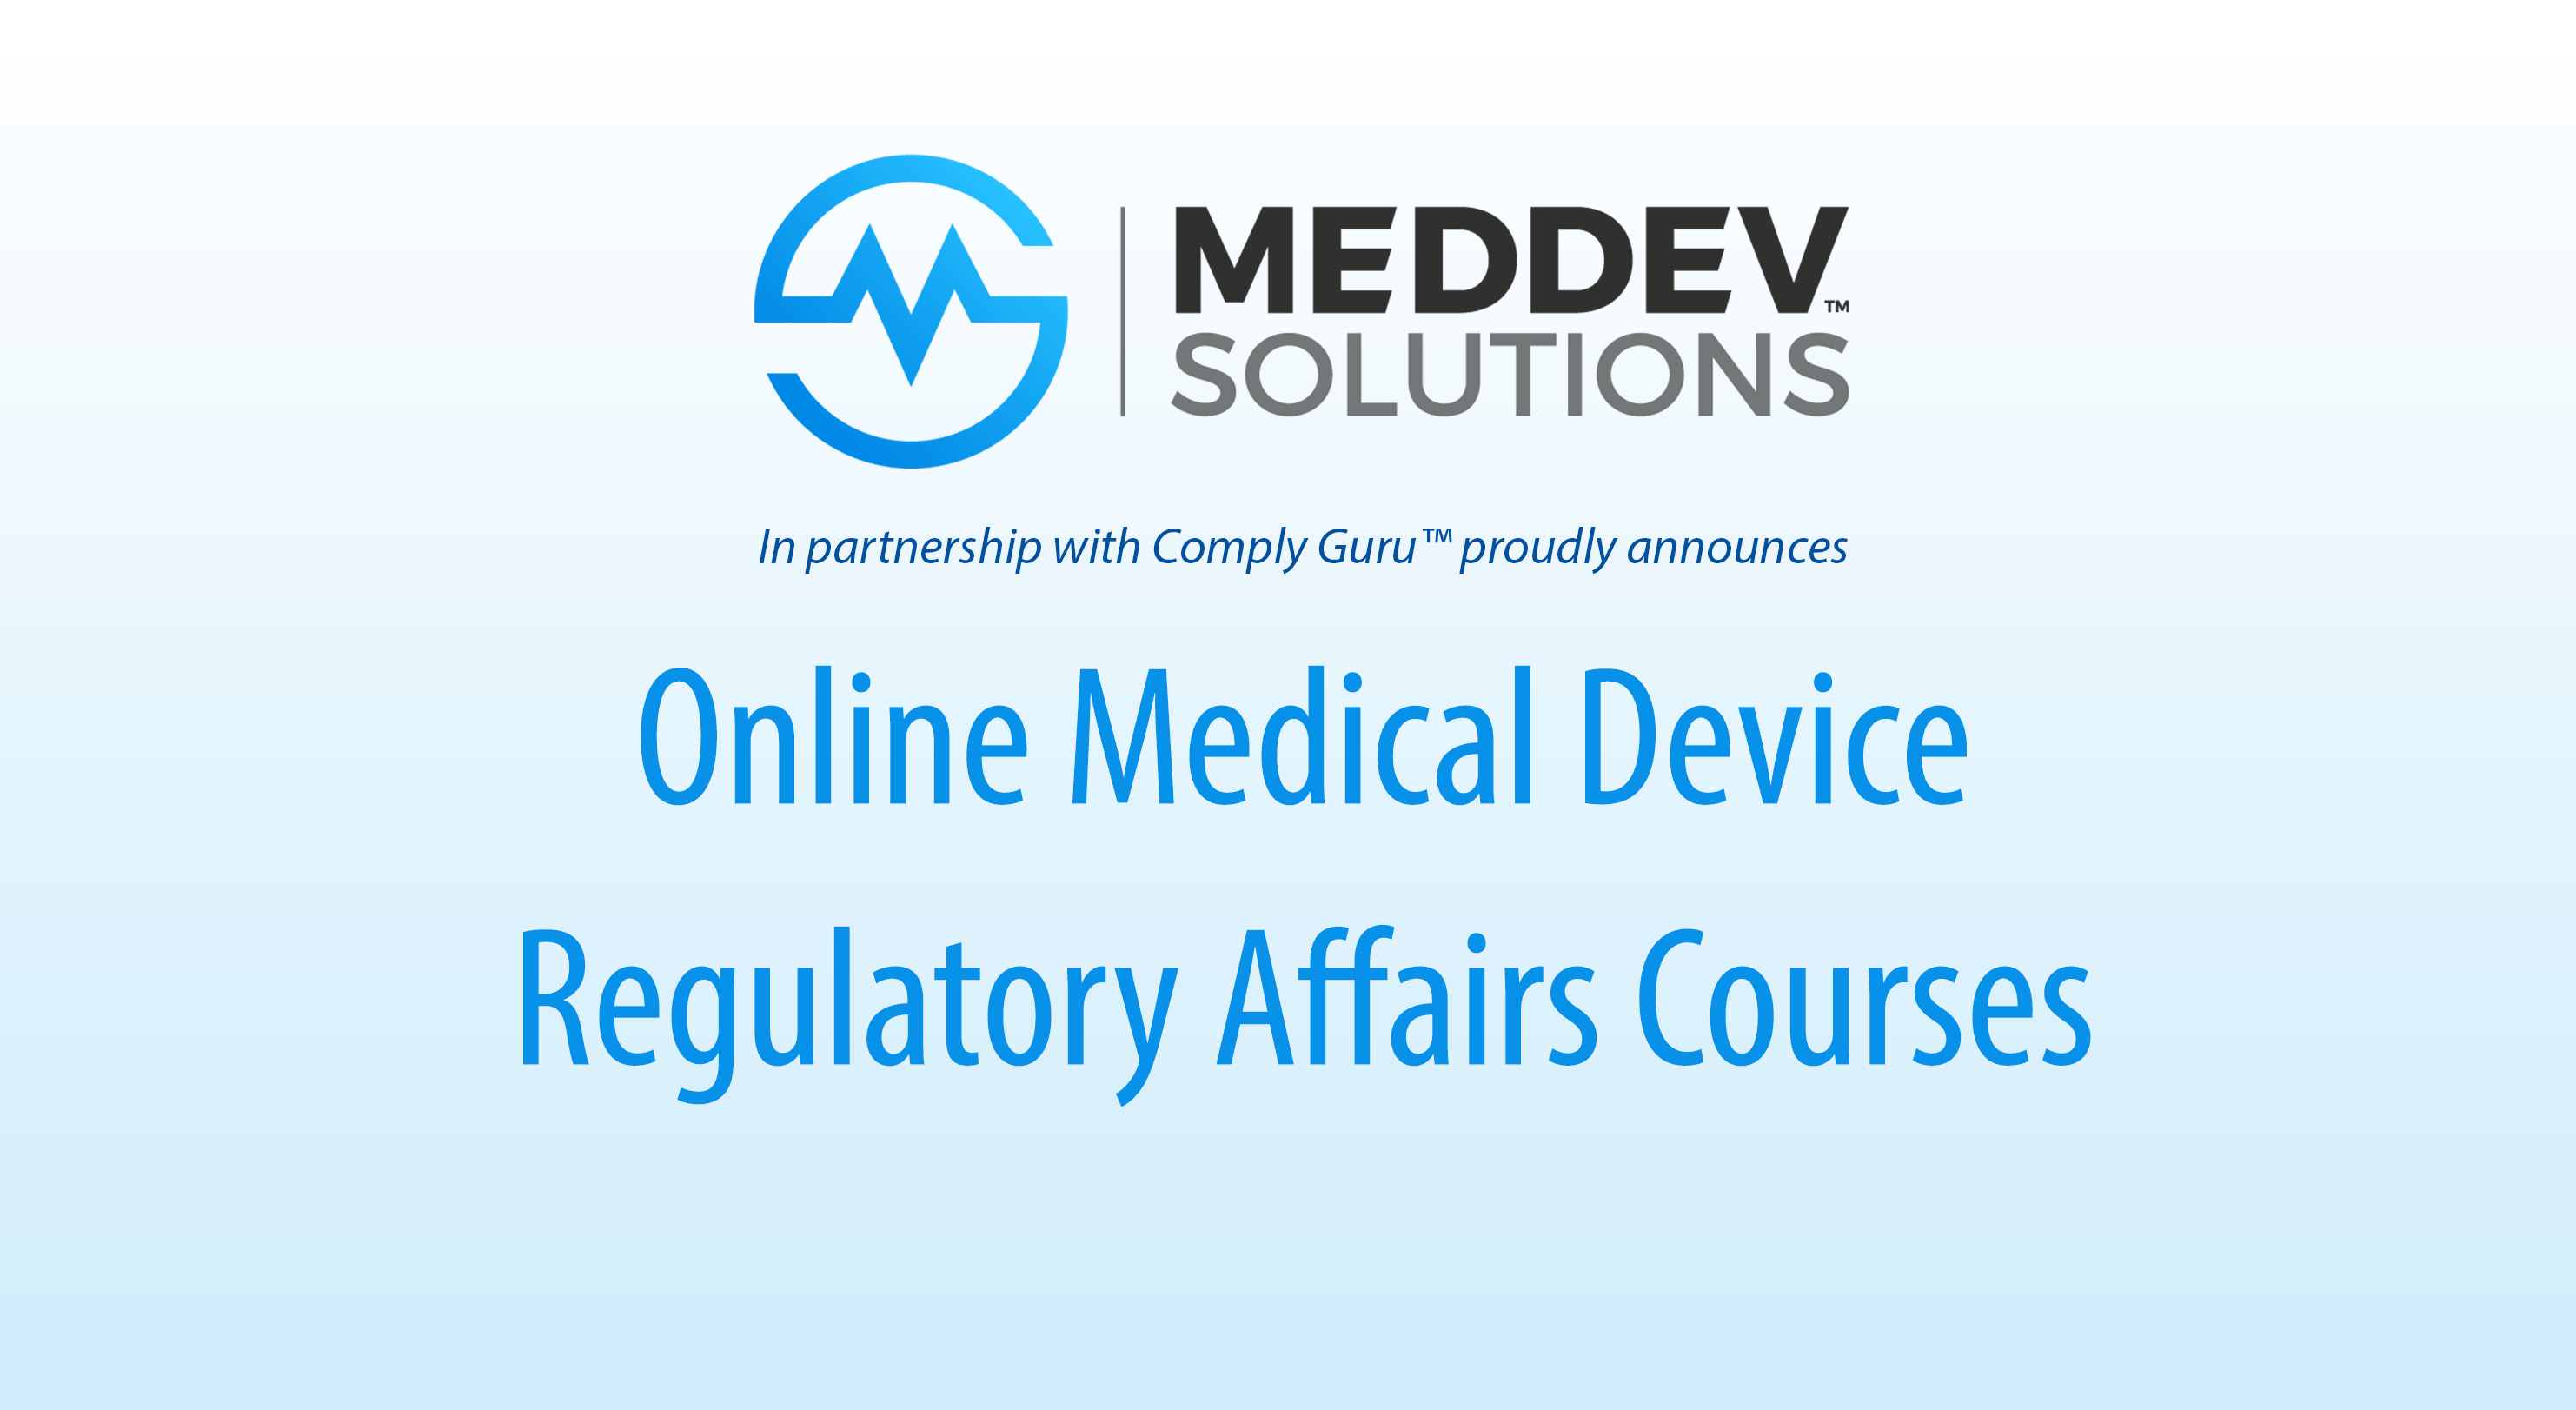 Online Medical Device Regulatory Affairs Training